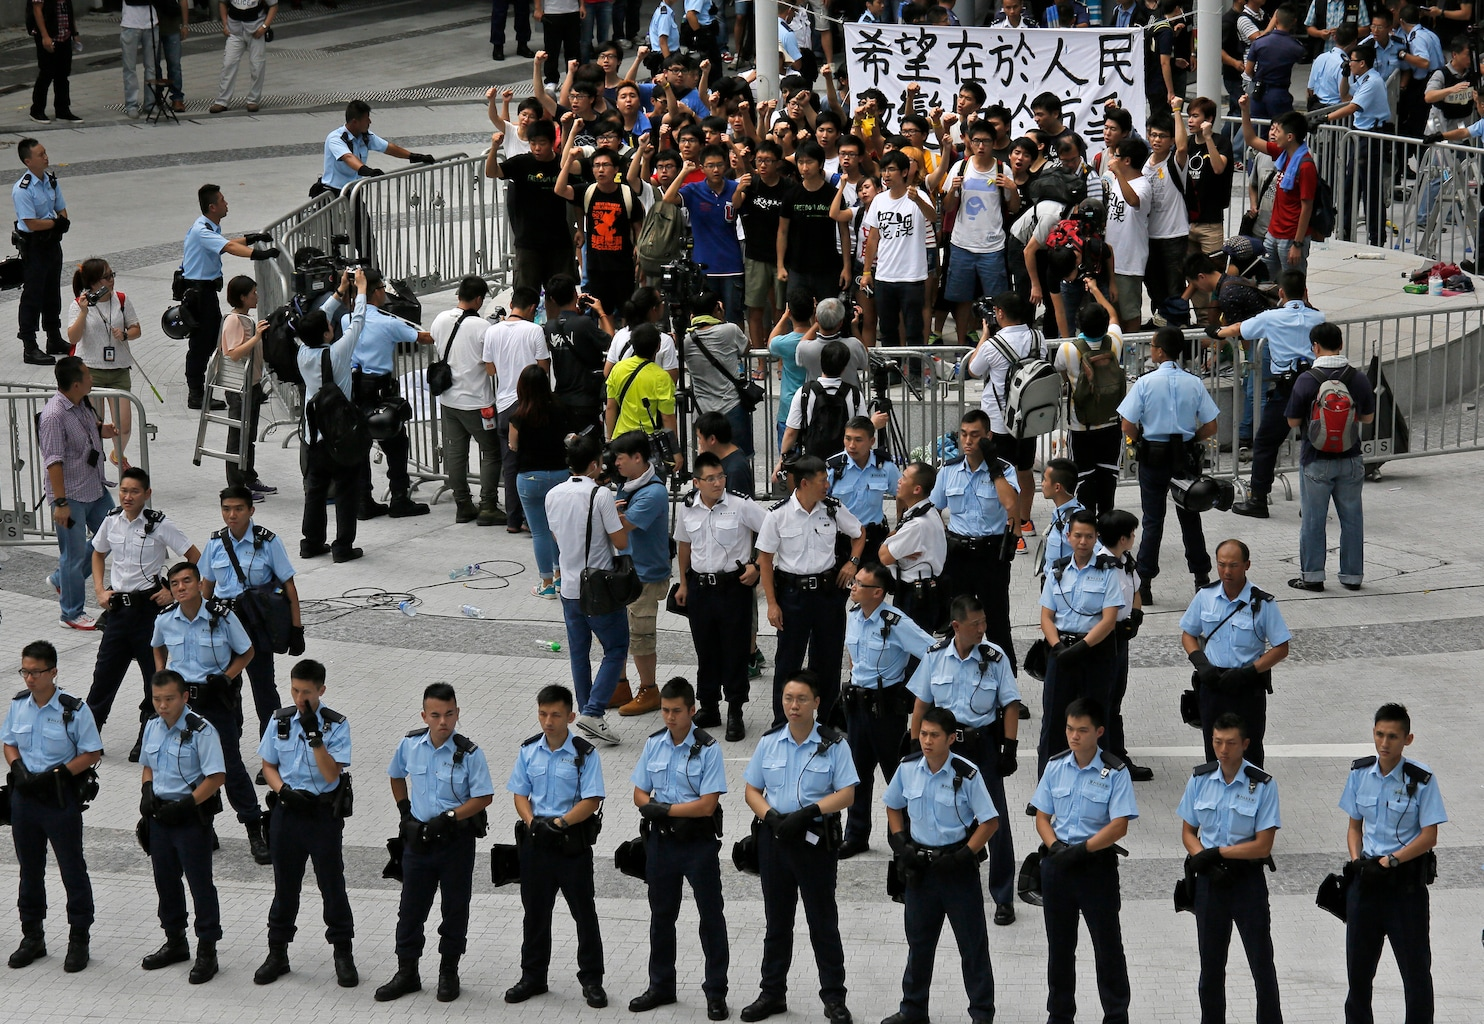 Hong Kong activists start 'Occupy Central' protest - The ...